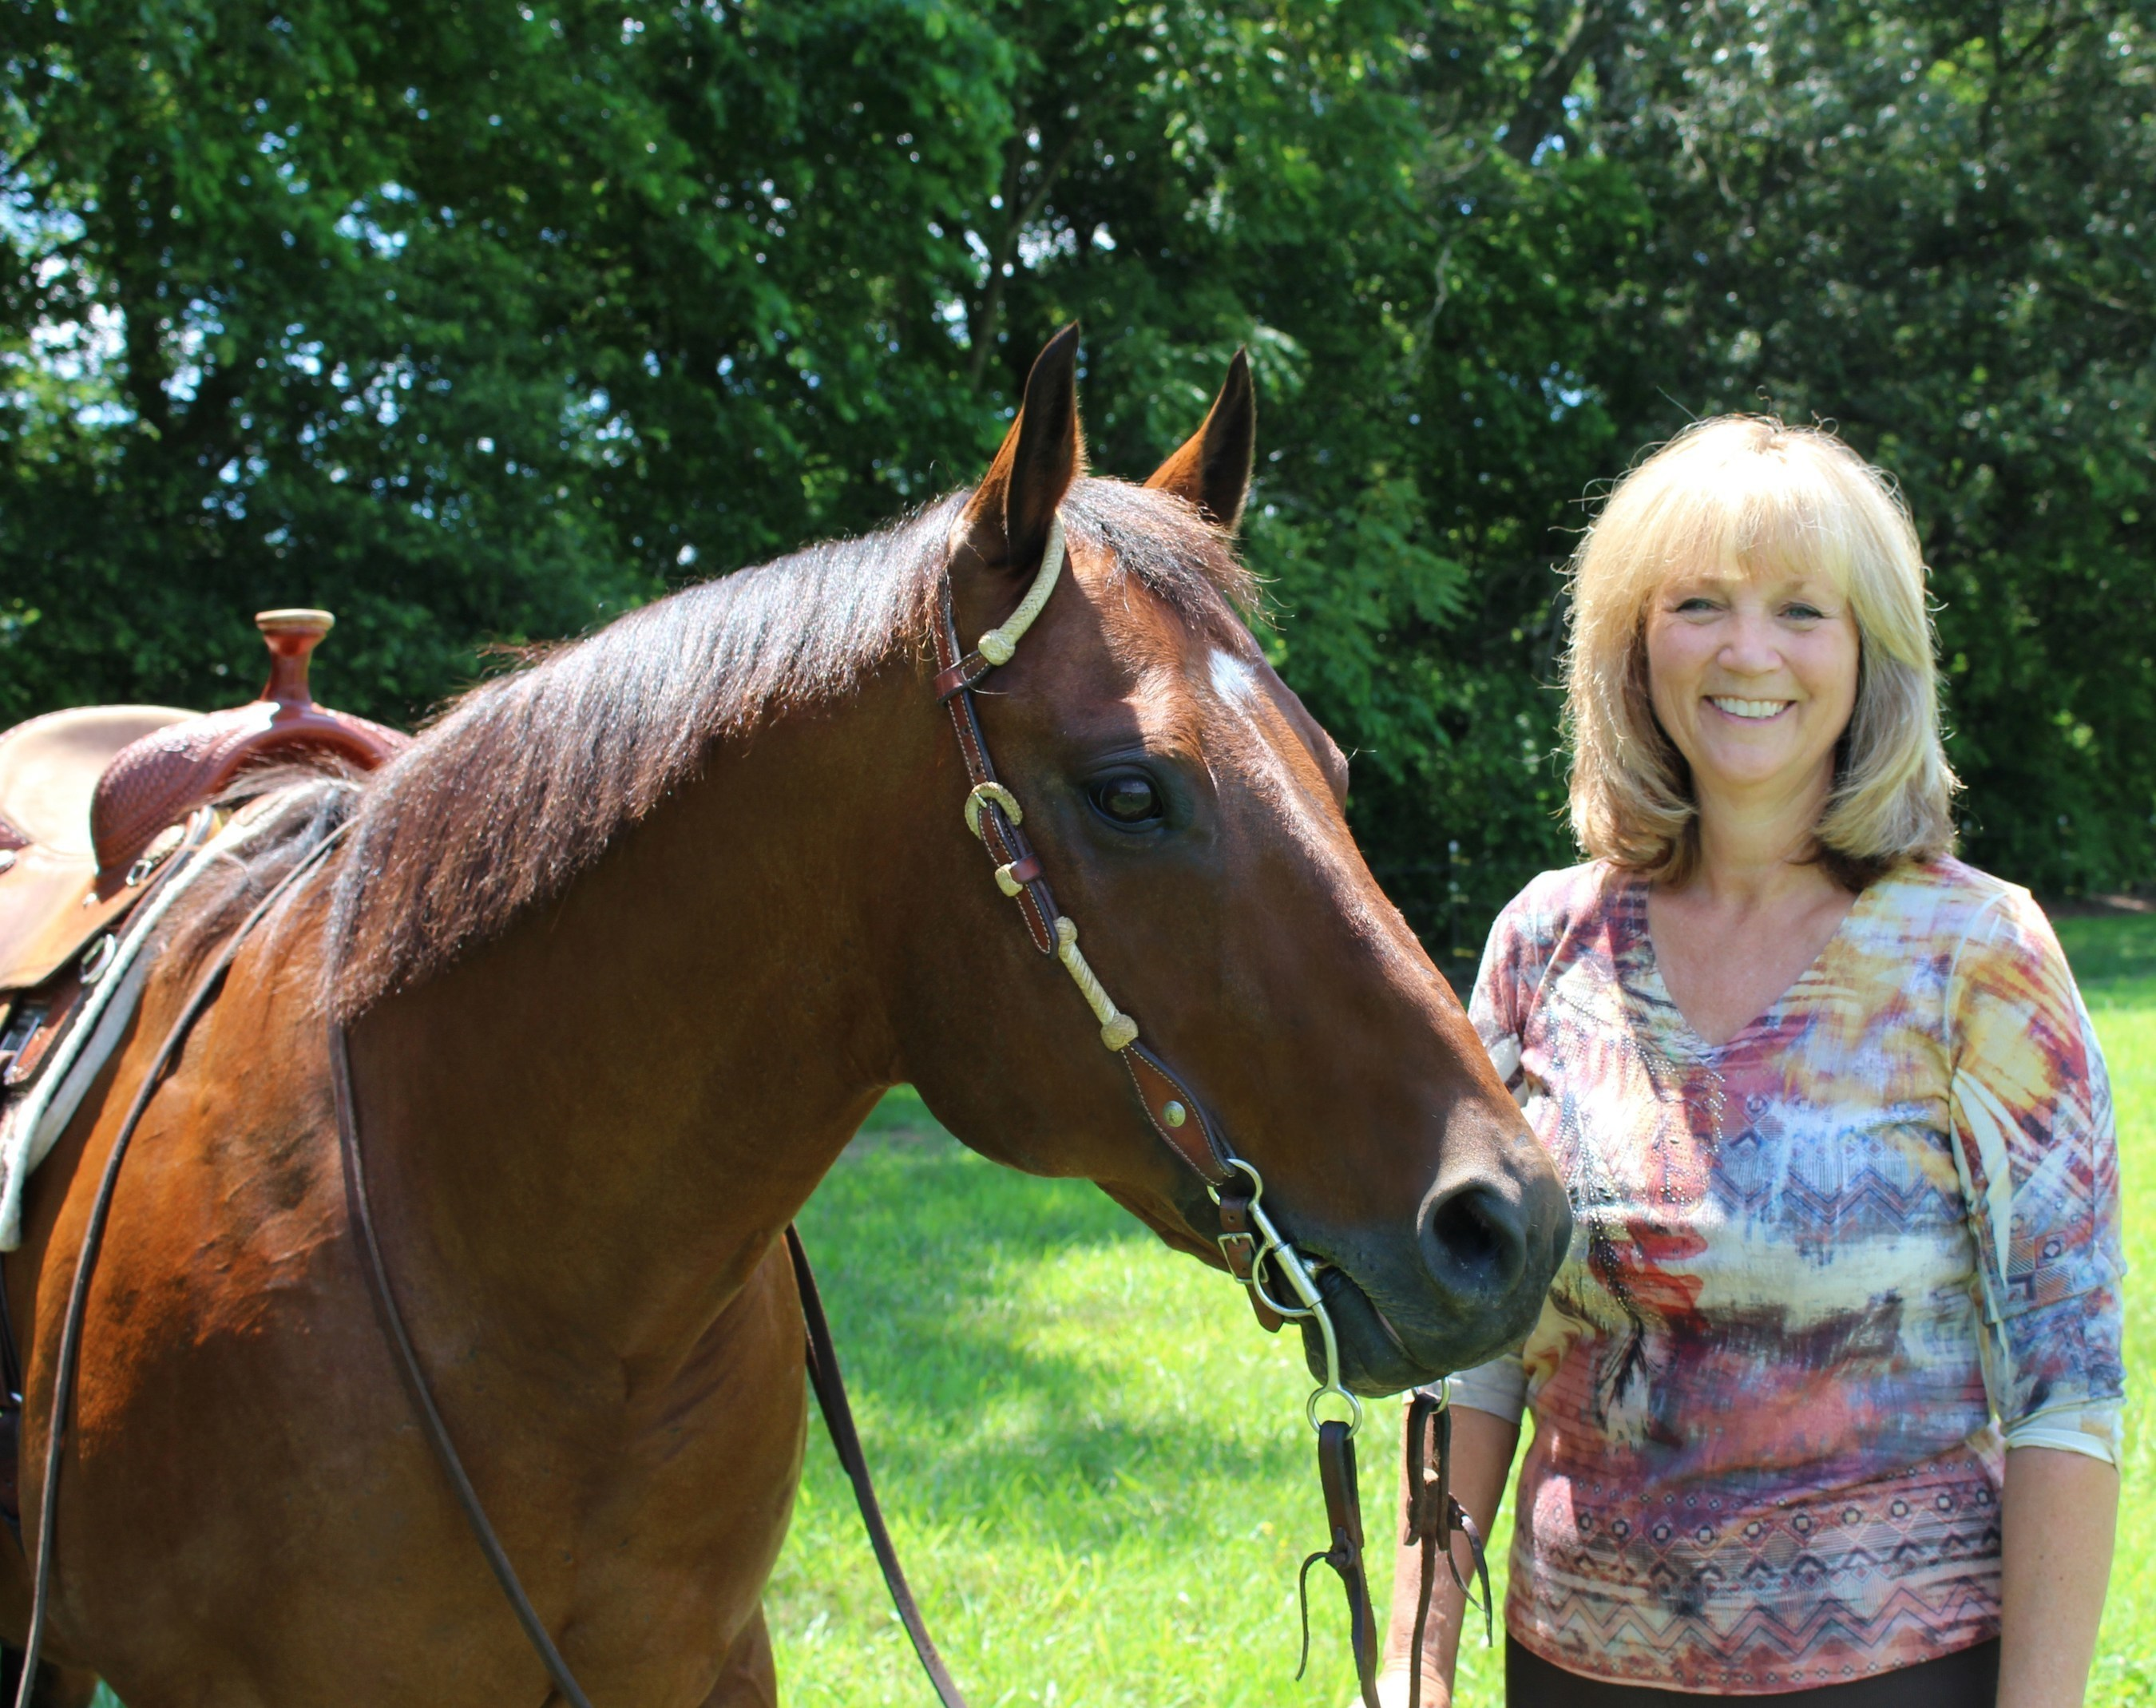 Kim Blanton is the 'Go To' Realtor' for Equine Property Buyers and Sellers in Middle Tennessee